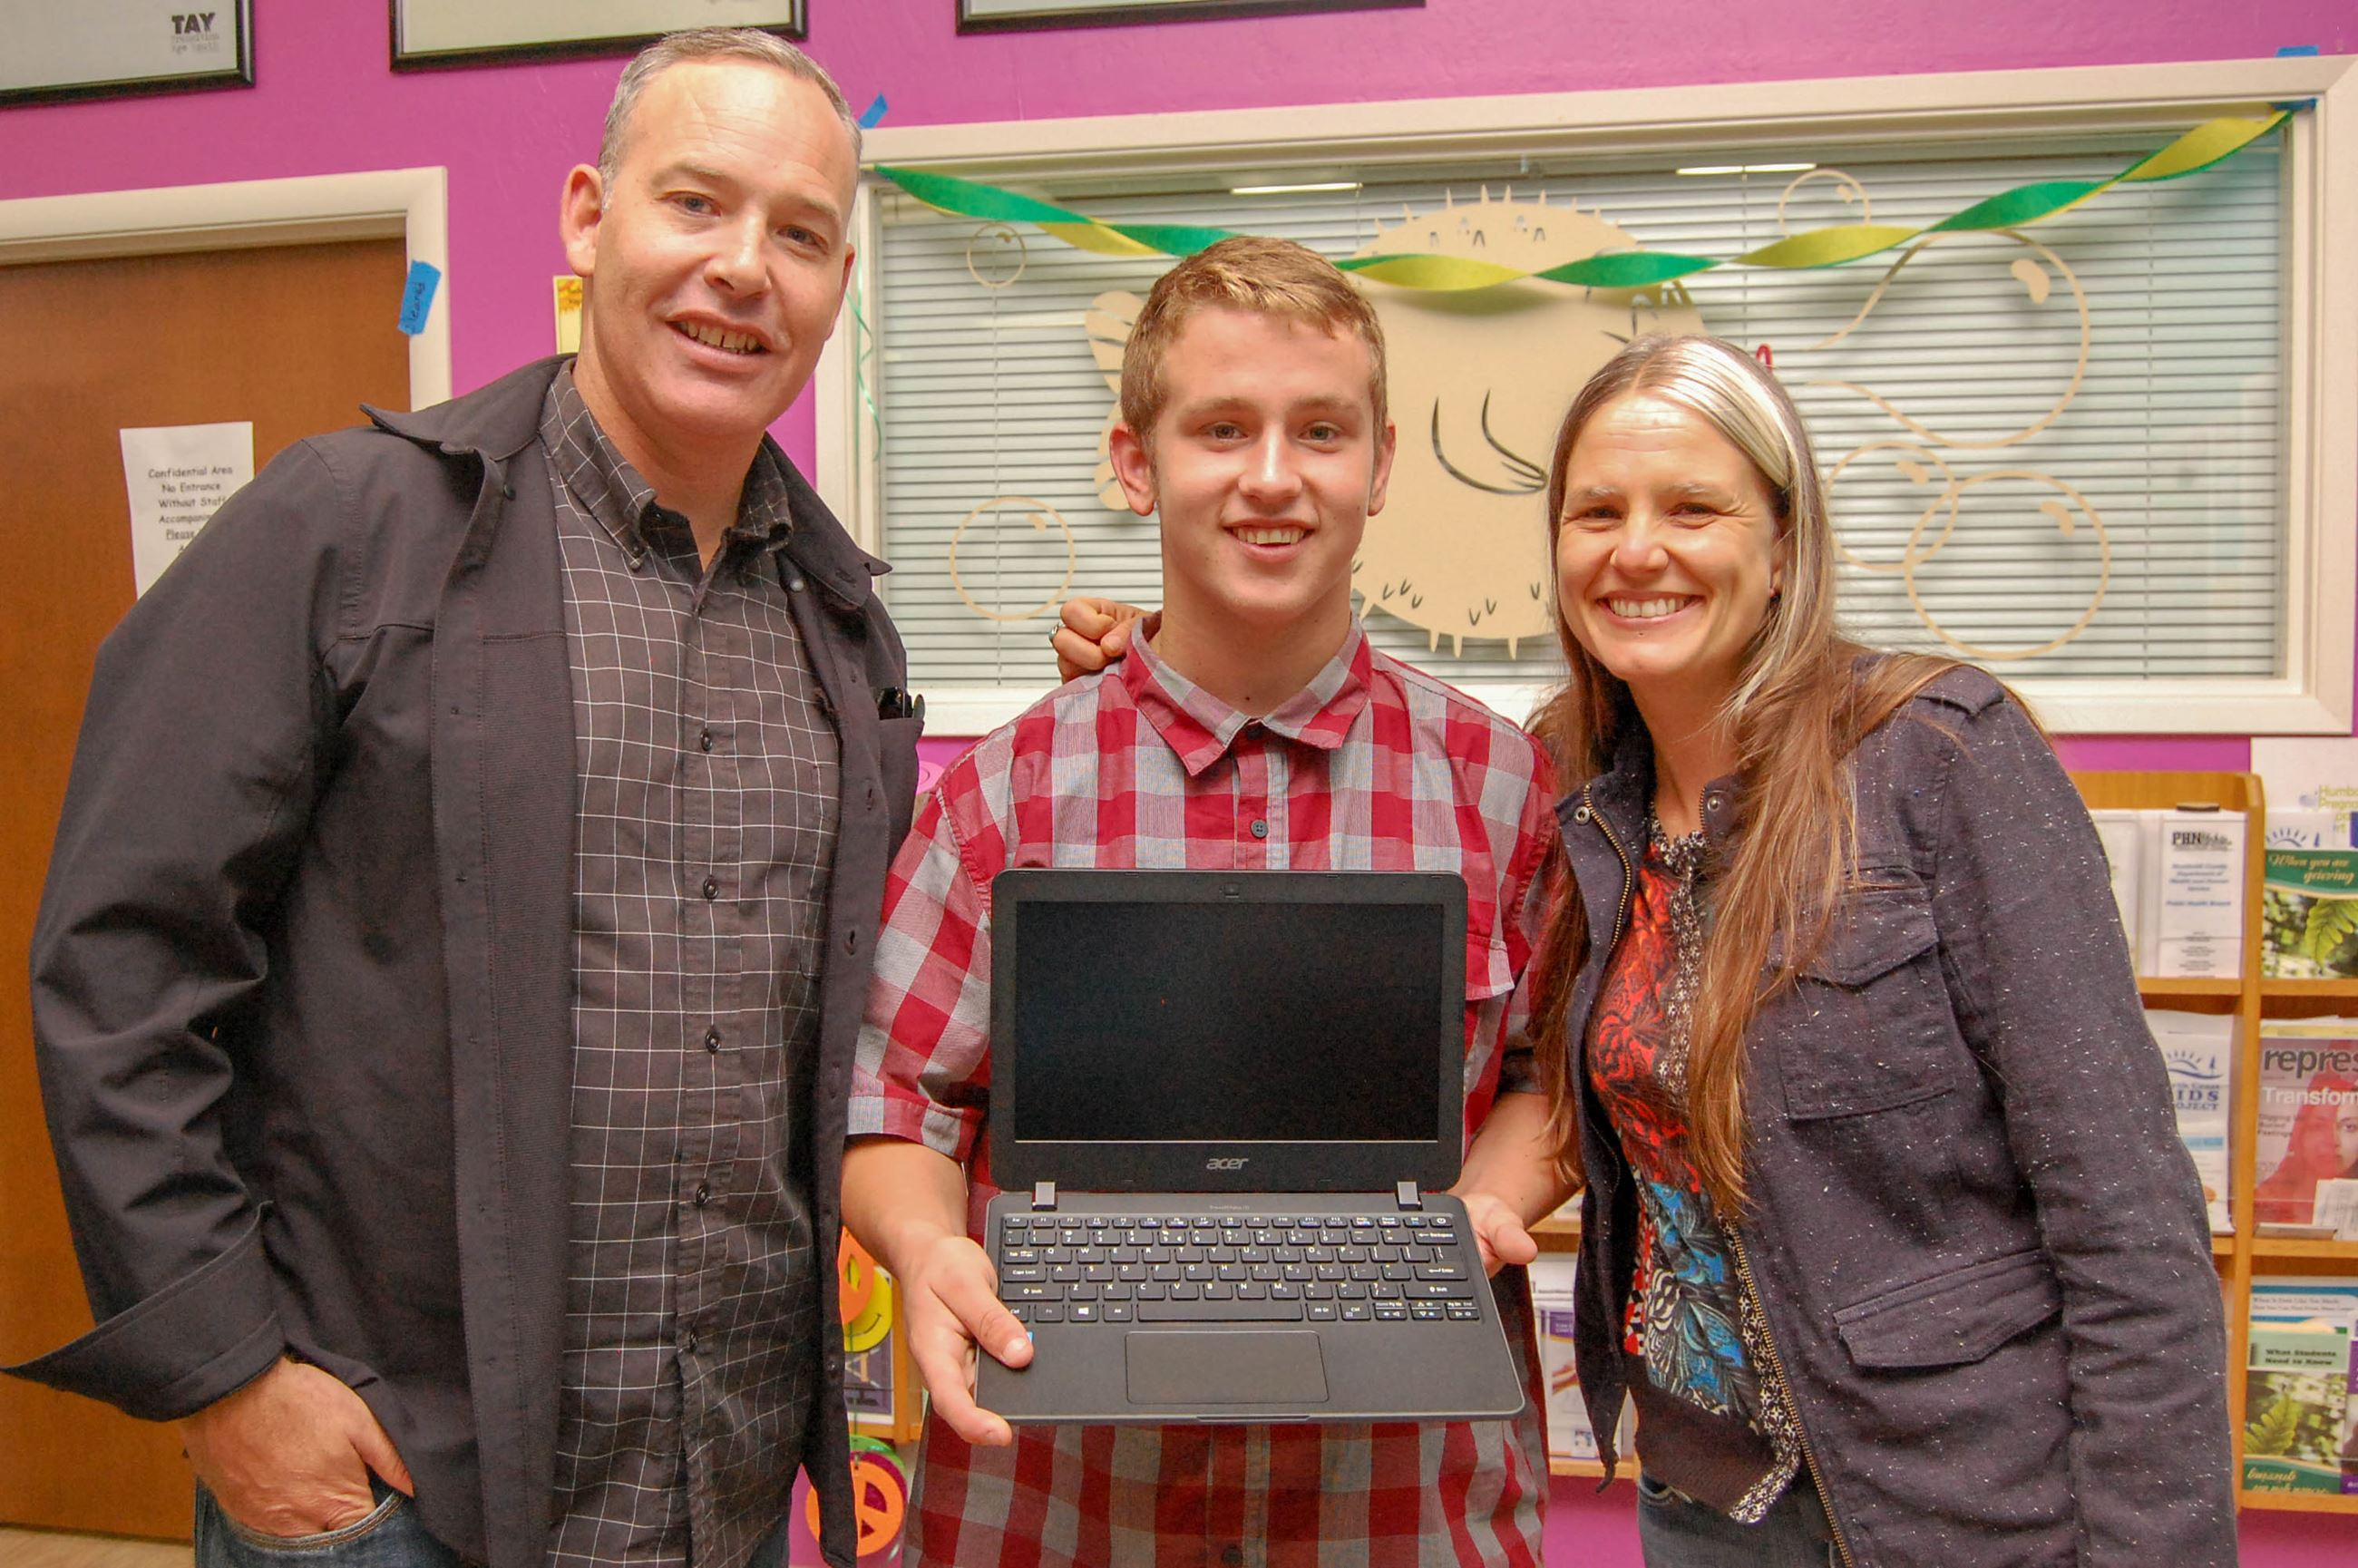 Foster youth holding a laptop standing between two support staff